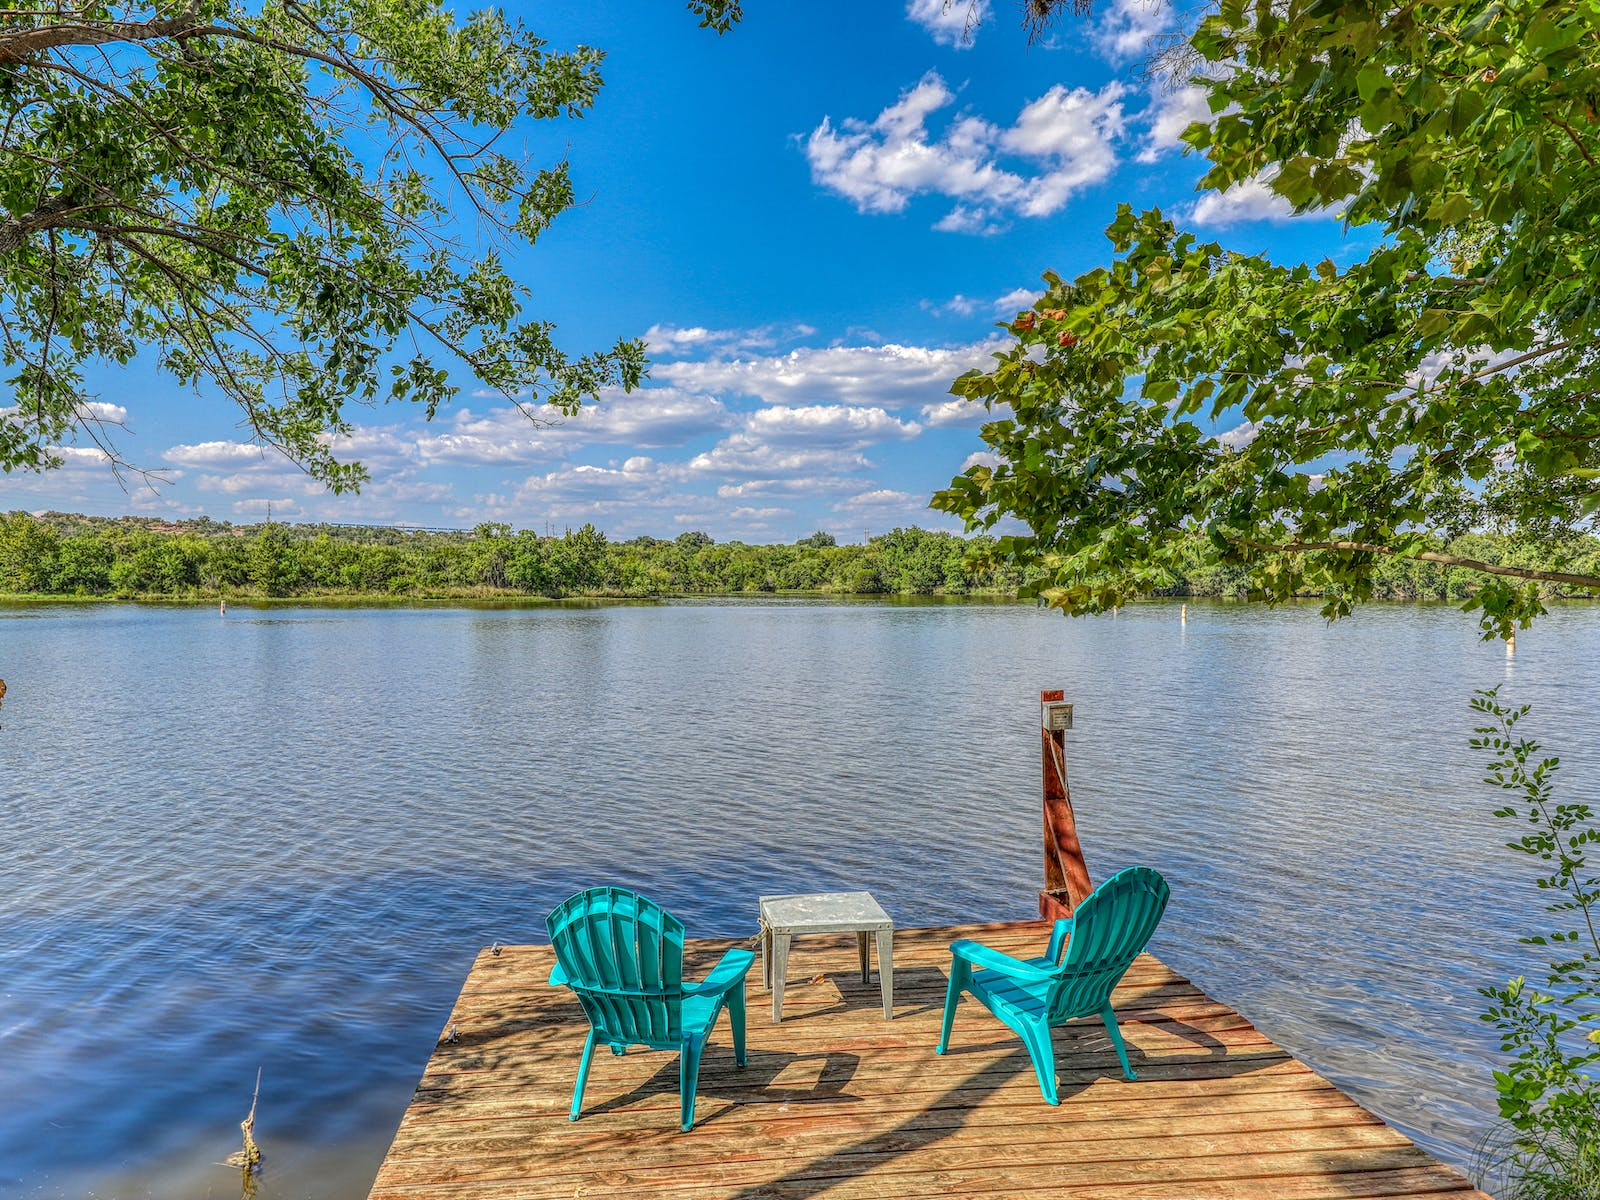 Vacation rental dock in Texas